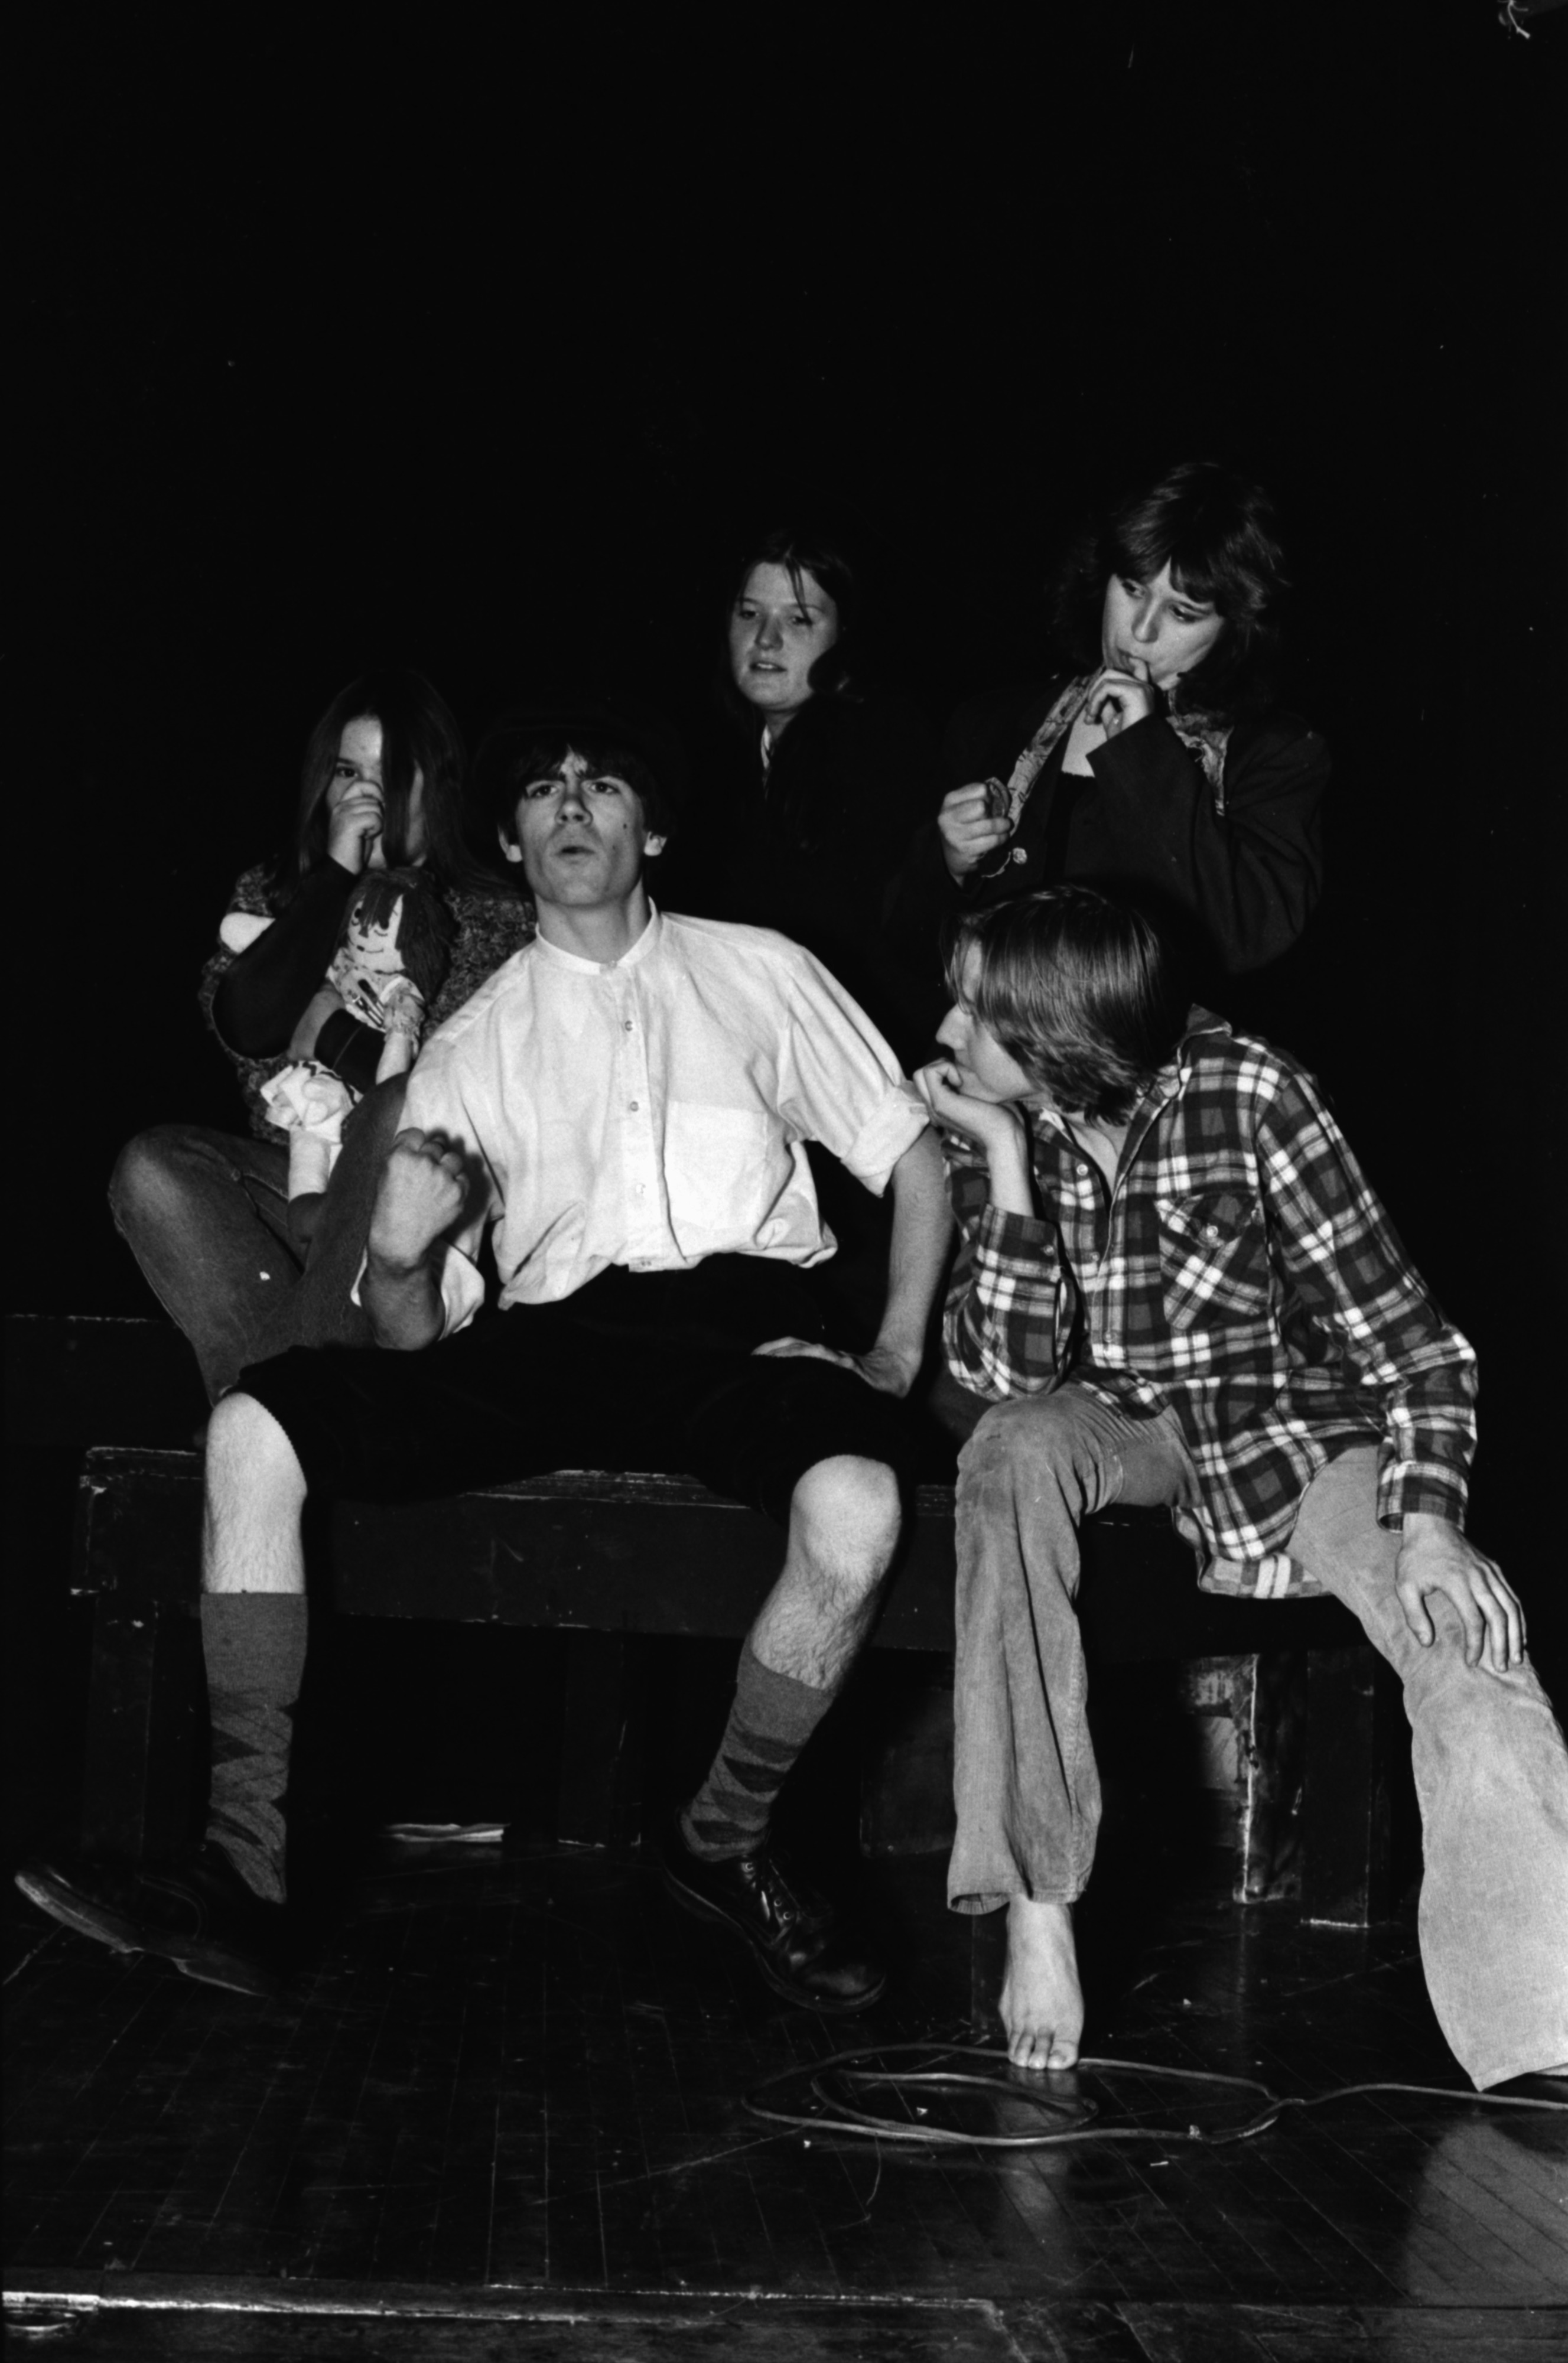 Community High School students rehearsing play about Thomas A. Edison, November 1979 image